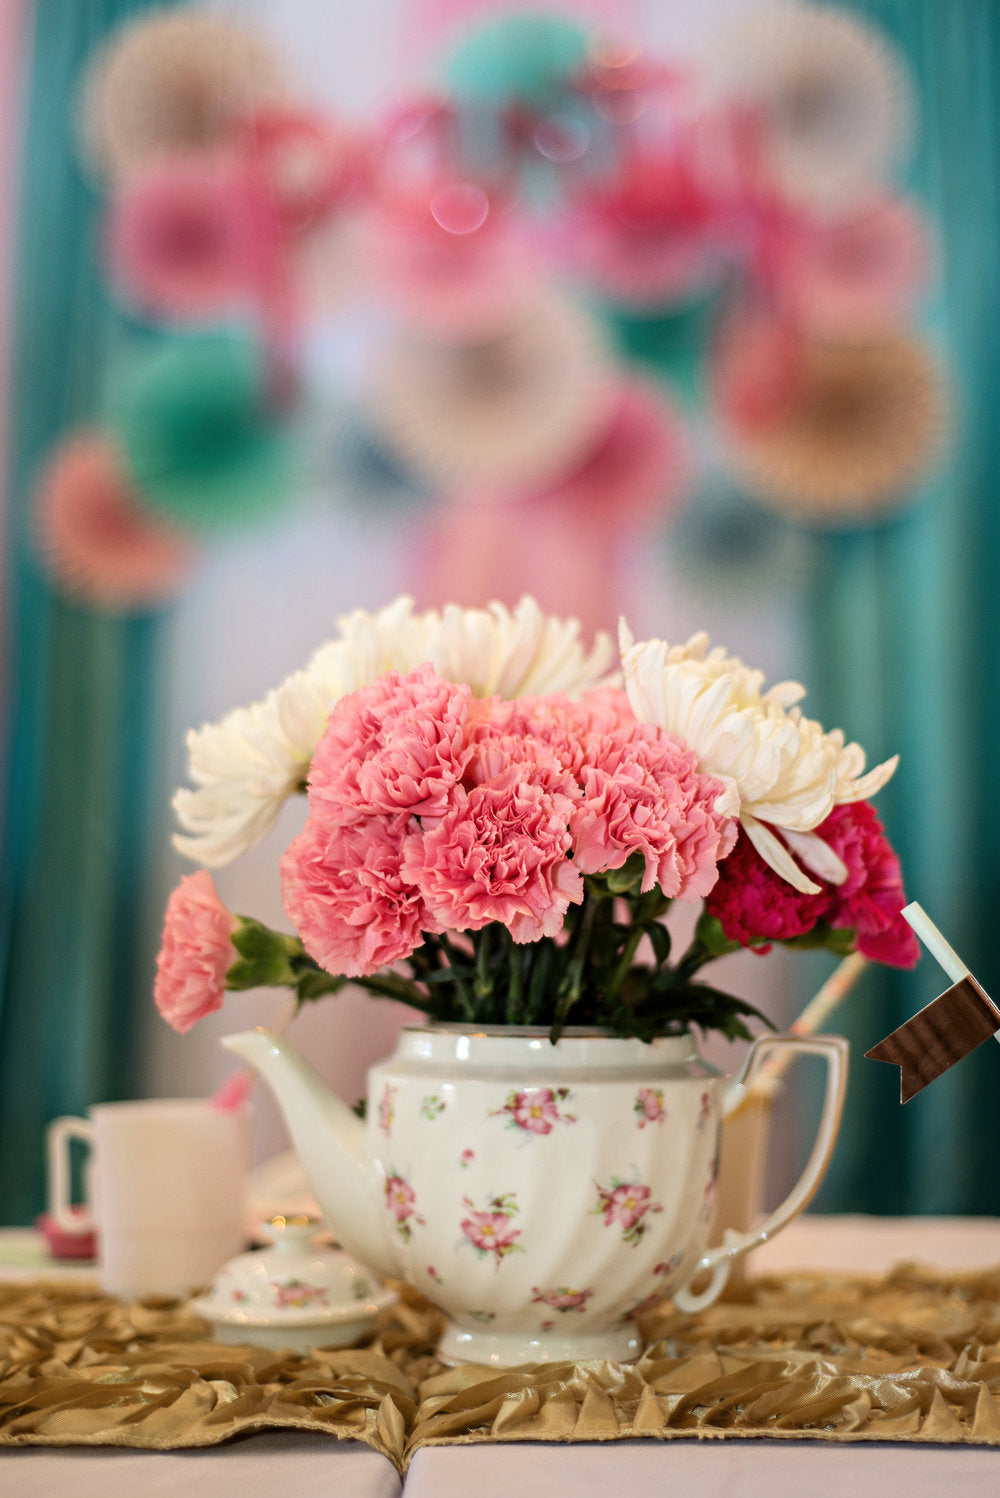 Closeup photo of flower arrangement sitting inside a teapot